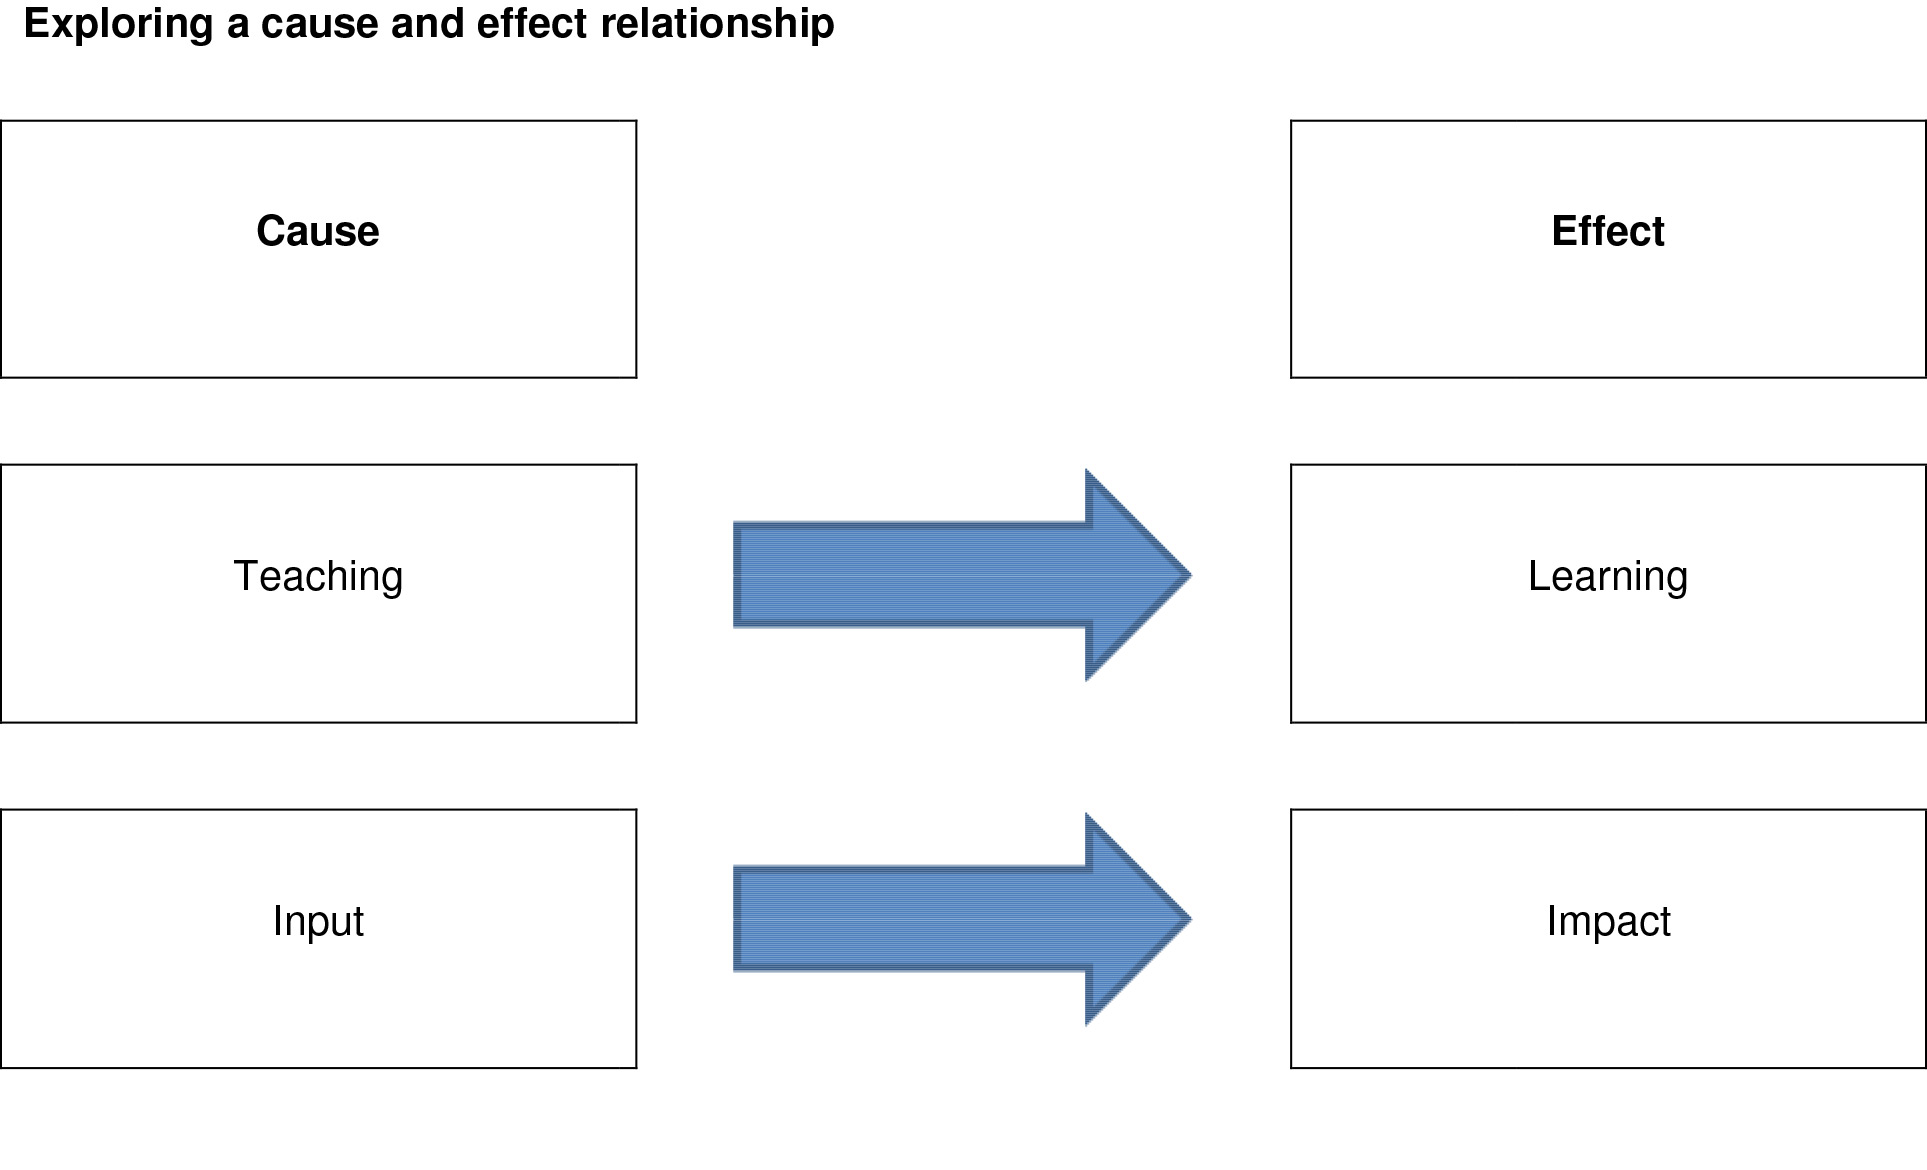 Diagram Exploring a cause and effect relationship